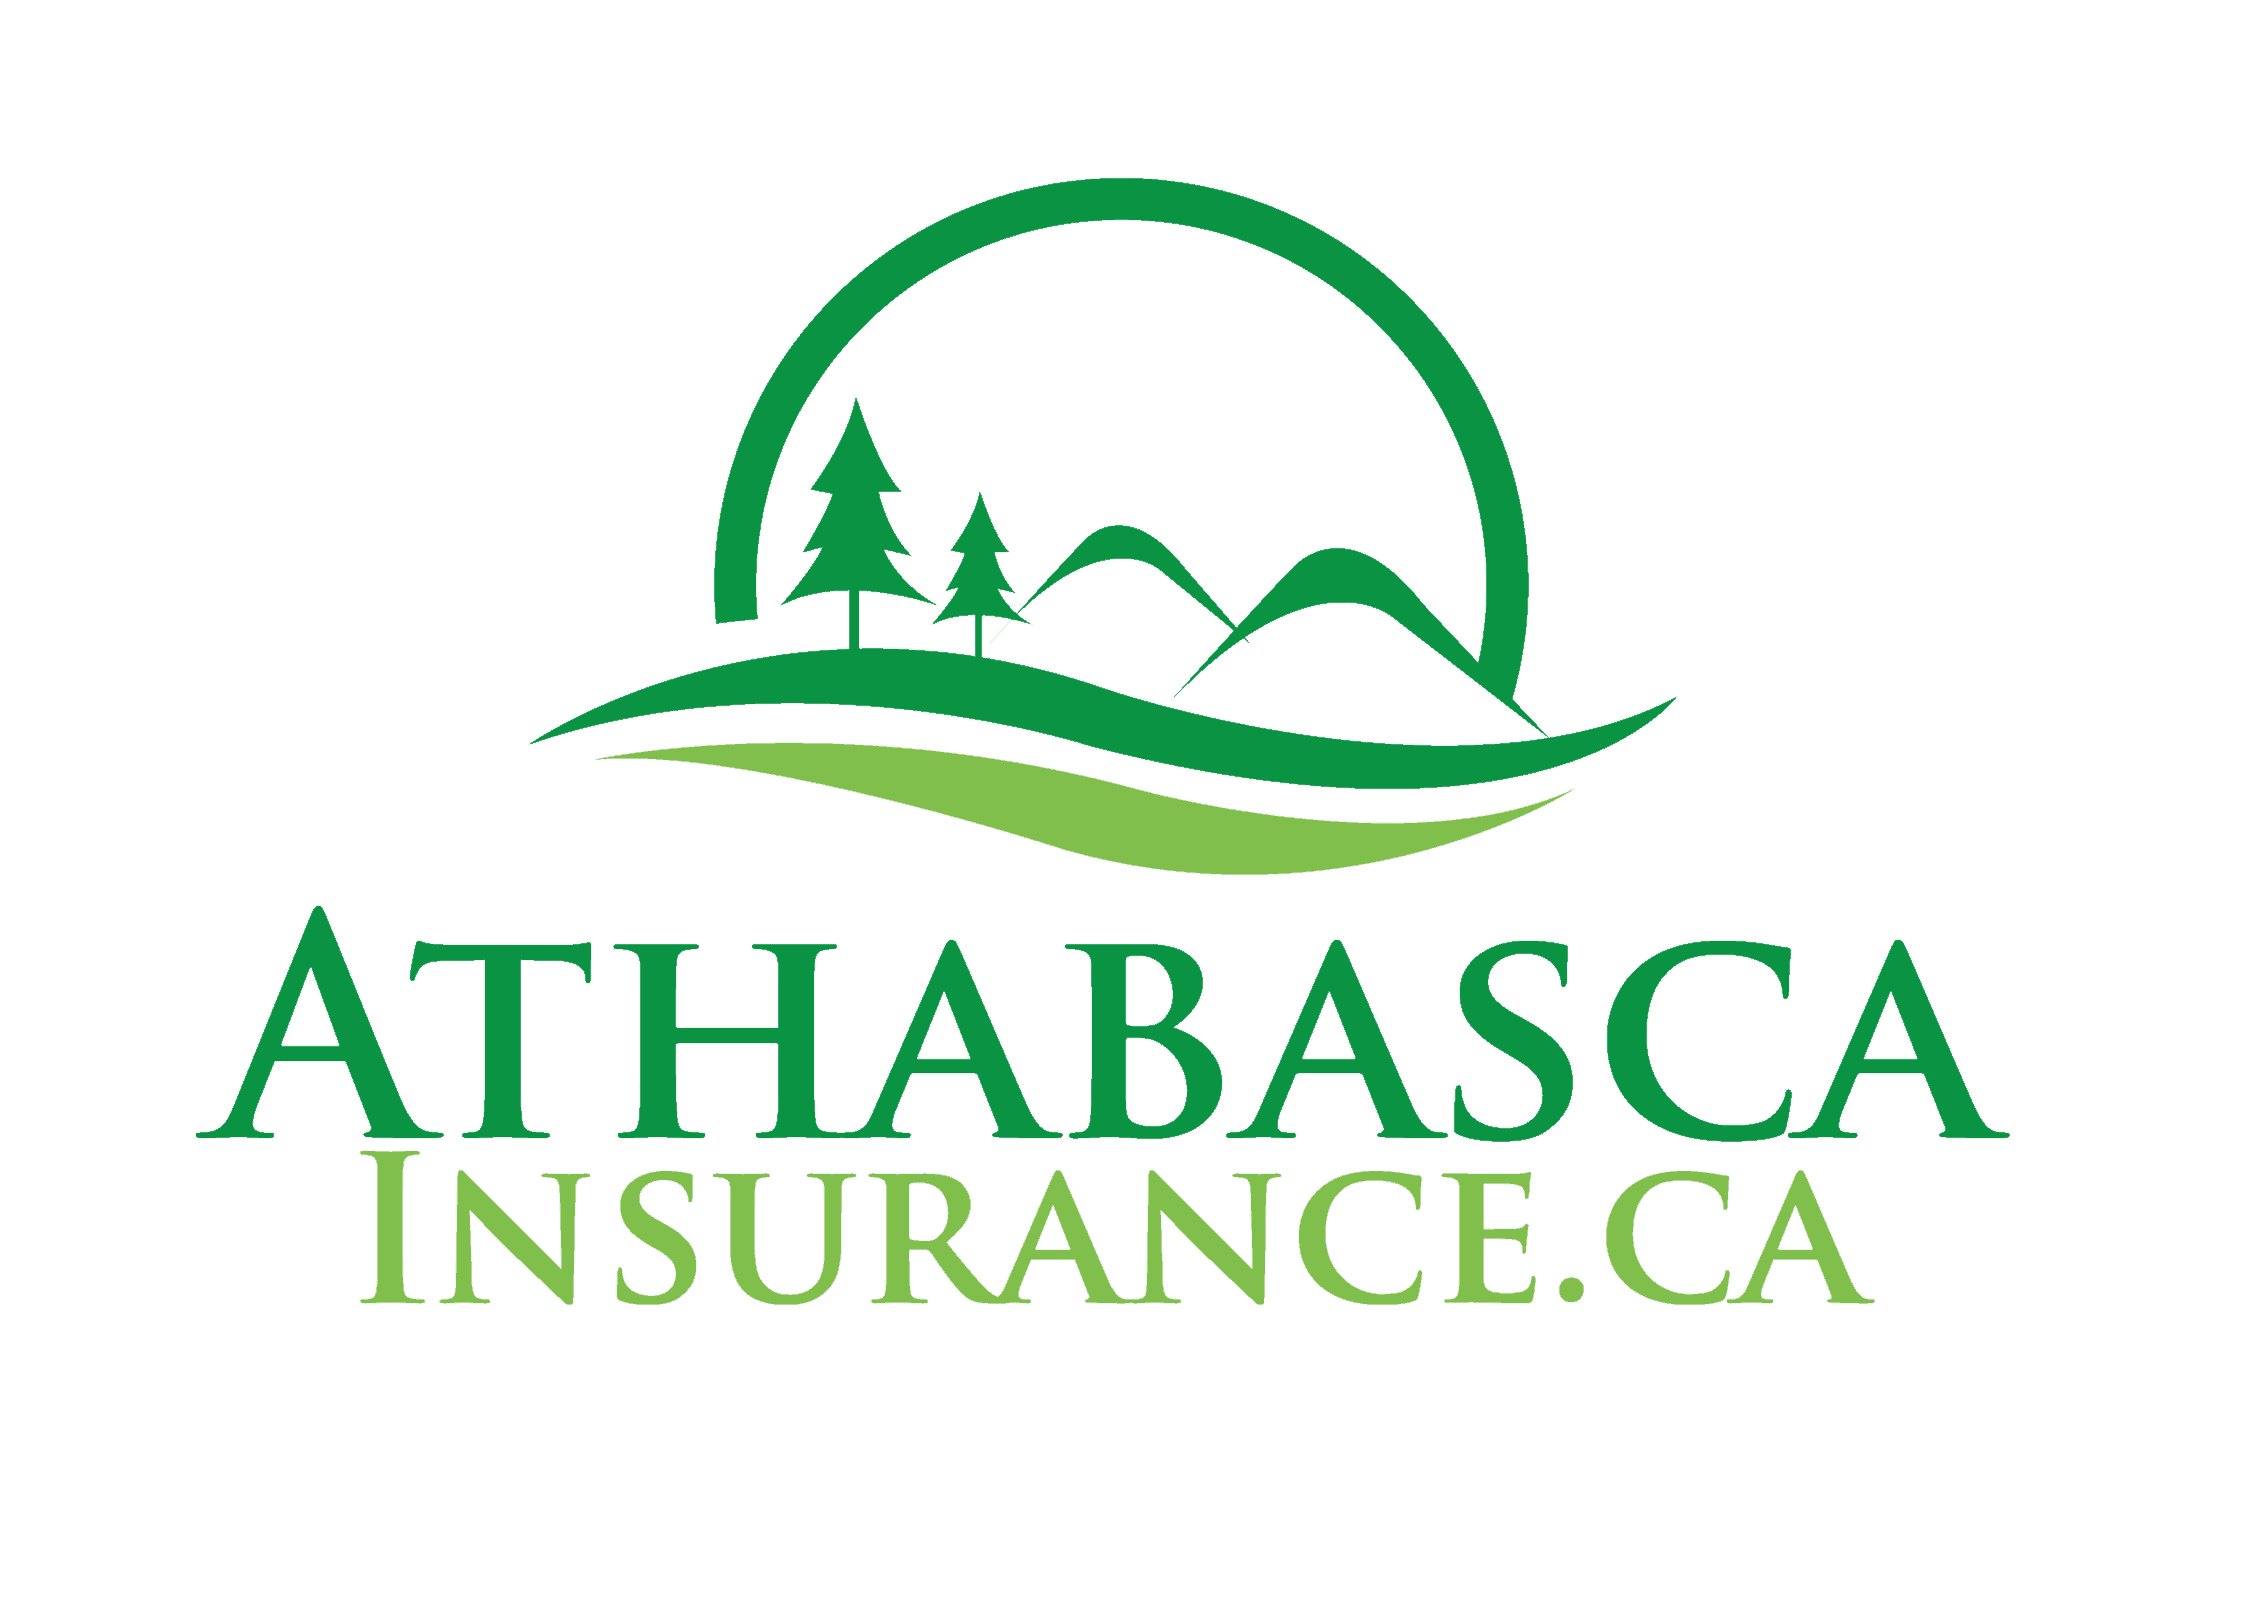 athabasca-insurance